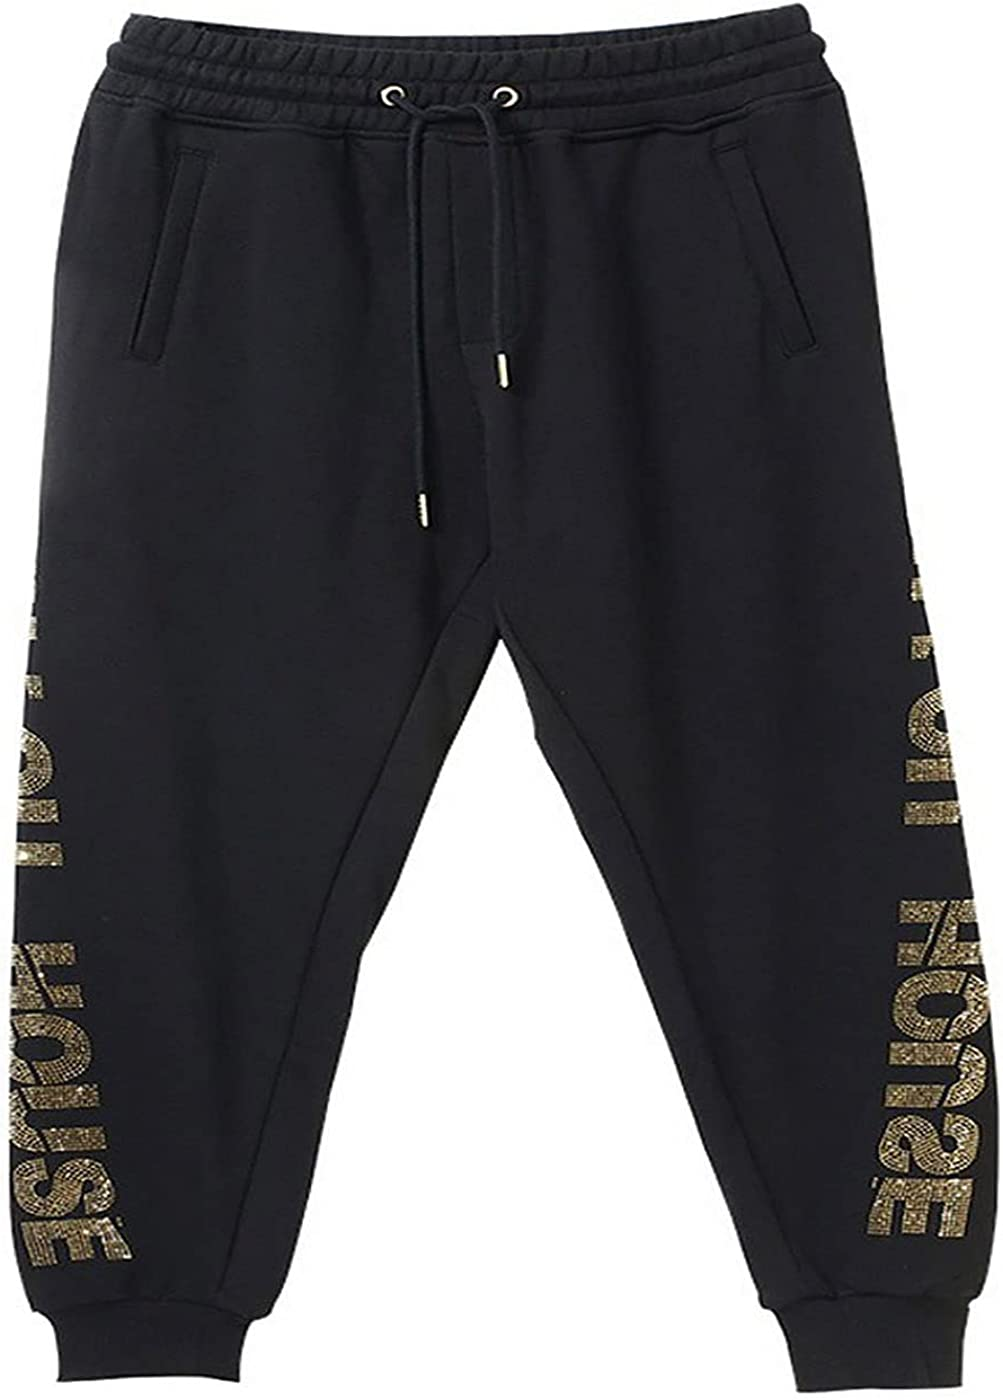 Letters on Both Sides Rhinestone Leisure Trousers Unisex